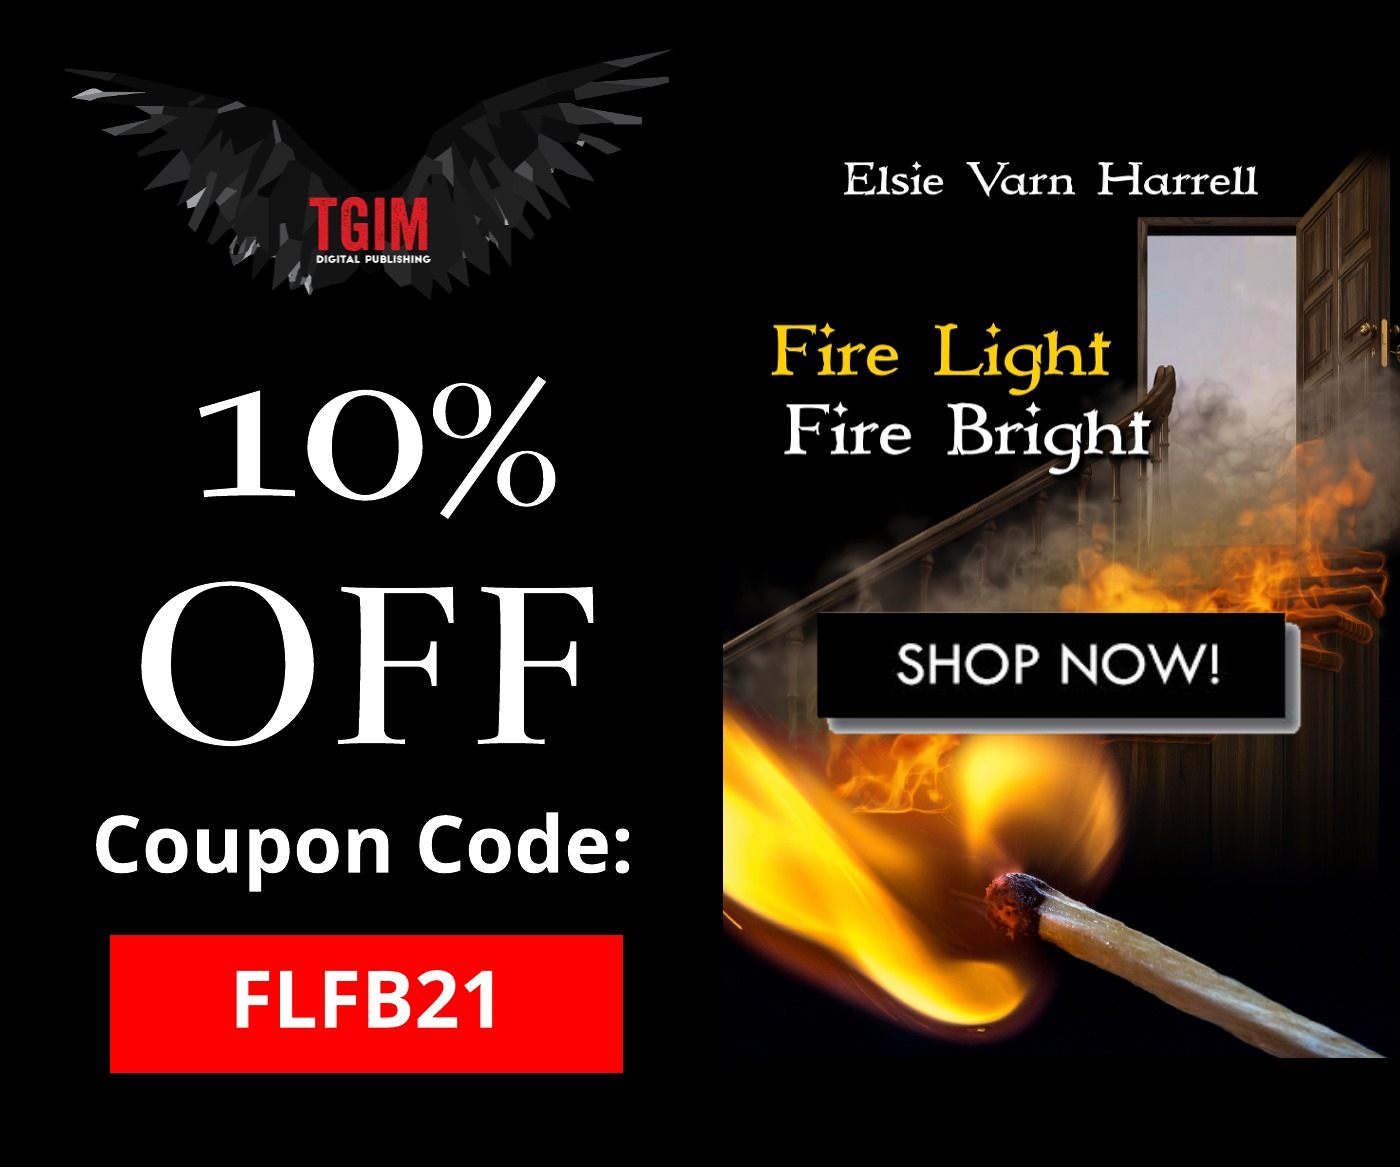 Fire Light Fire Bright 10% Off Buy Now Button